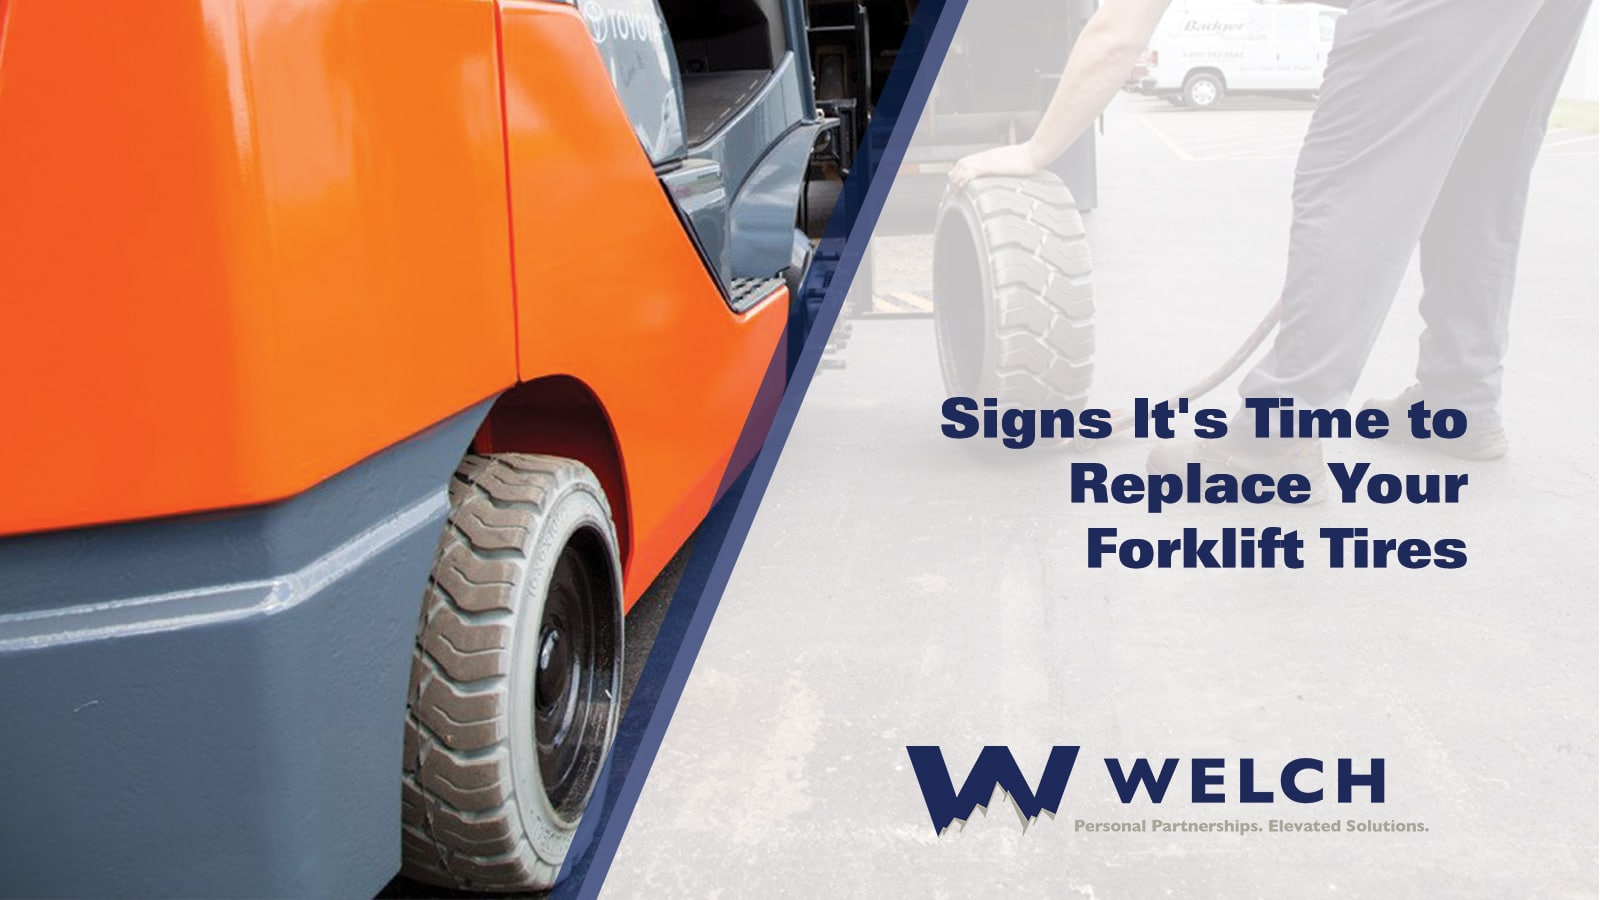 signs it's time to replace your forklift tires